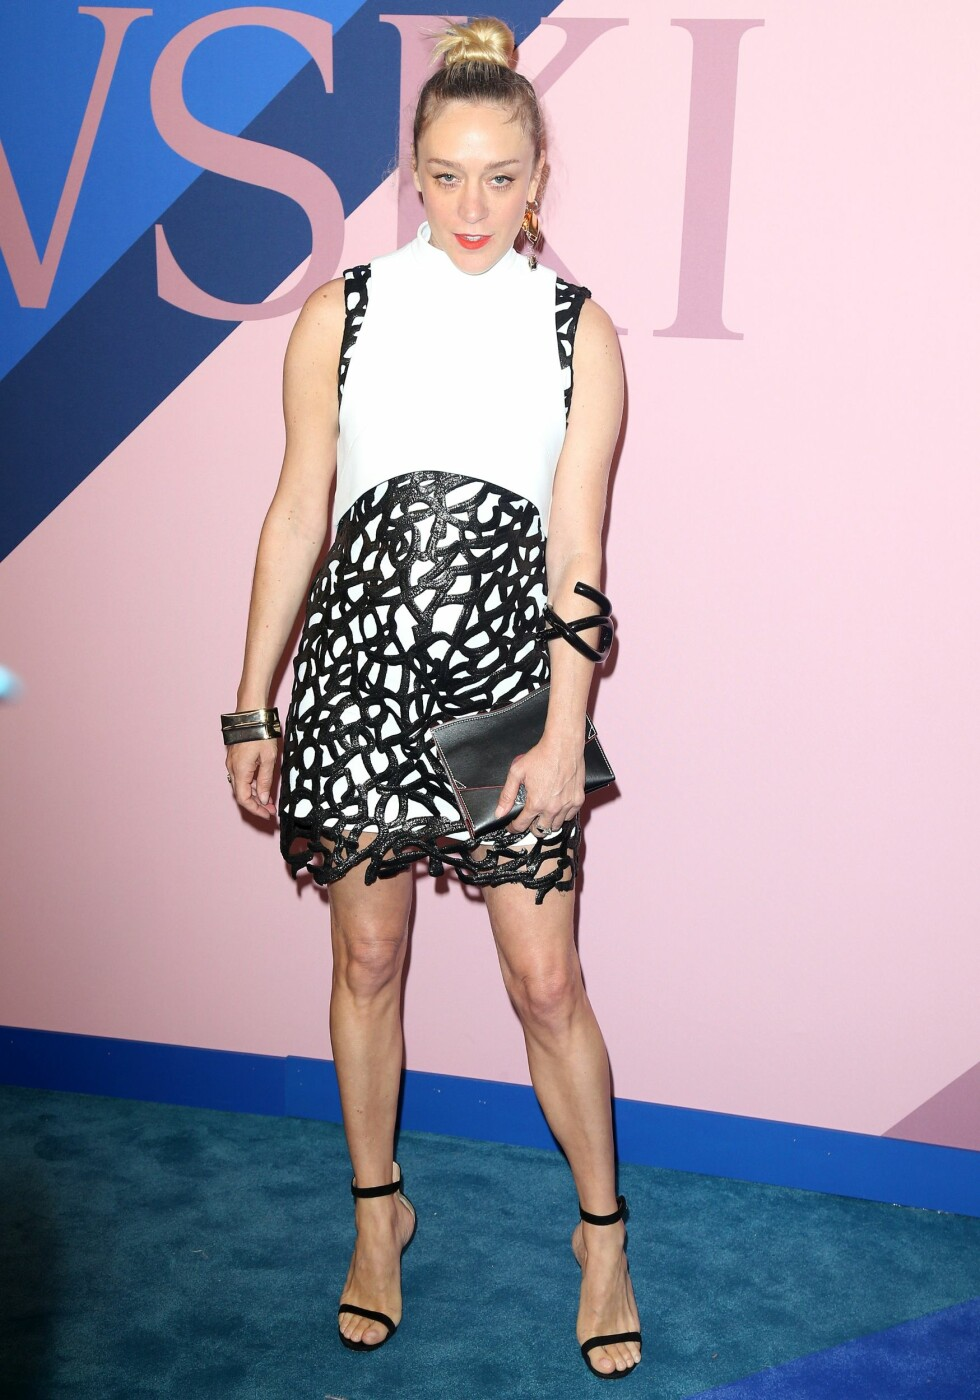 CFDA FASHION AWARDS: Chloe Sevigny Foto: Shutterstock